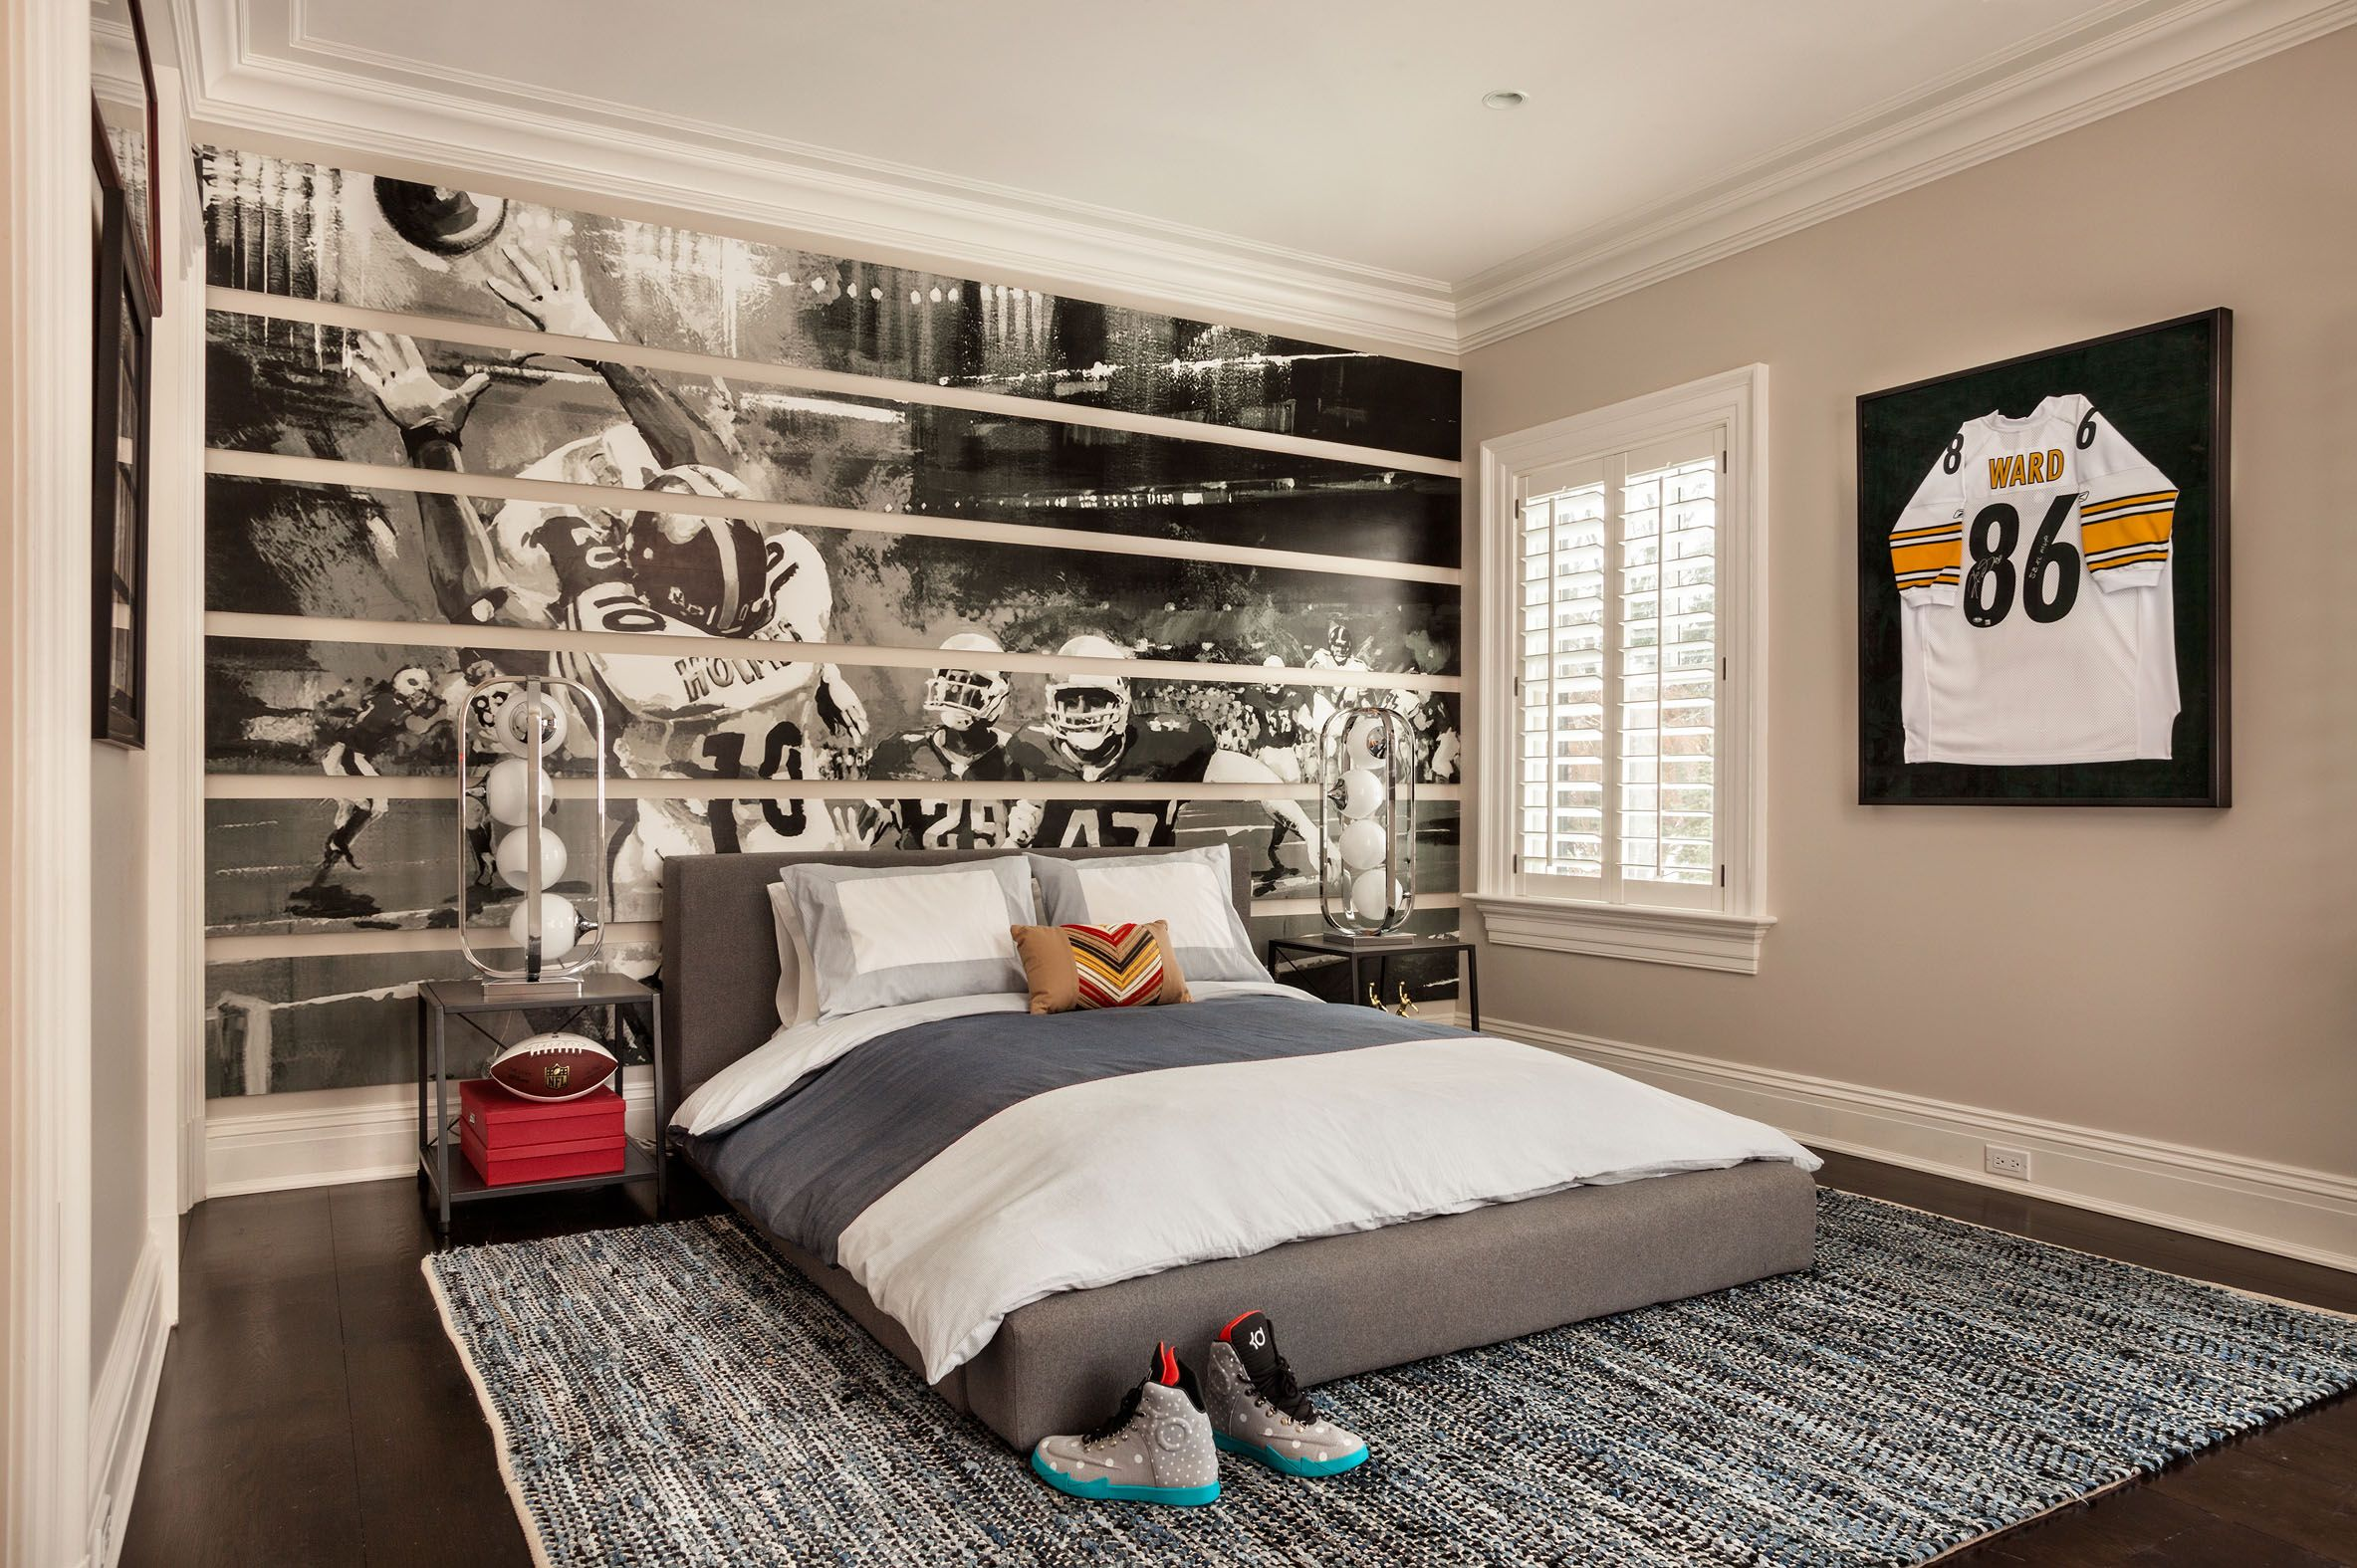 Interior bedroom design ideas teenage bedroom for boys teens room boys teenage bedroom ideas houzz with sporty masculine